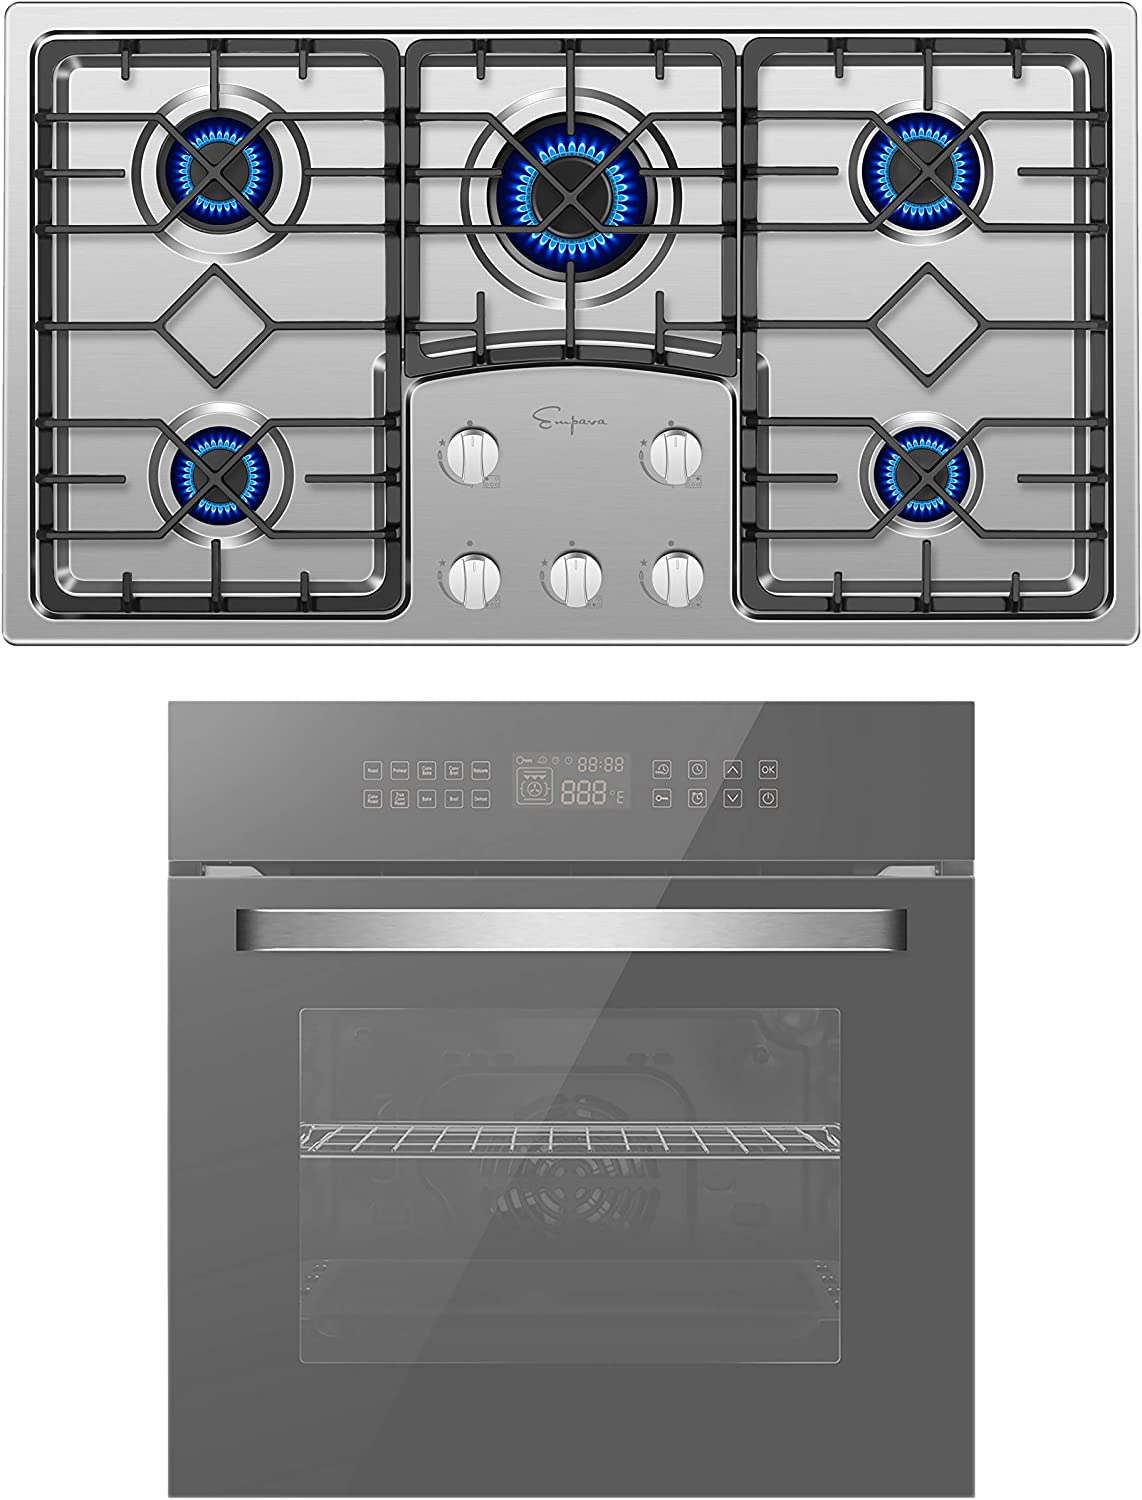 Empava 24 Inch Electric Single Wall Oven and 36 Inch Gas Cooktop Stove LPG/NG Convertible with 5 Italy SABAF Burners in Stainless Steel